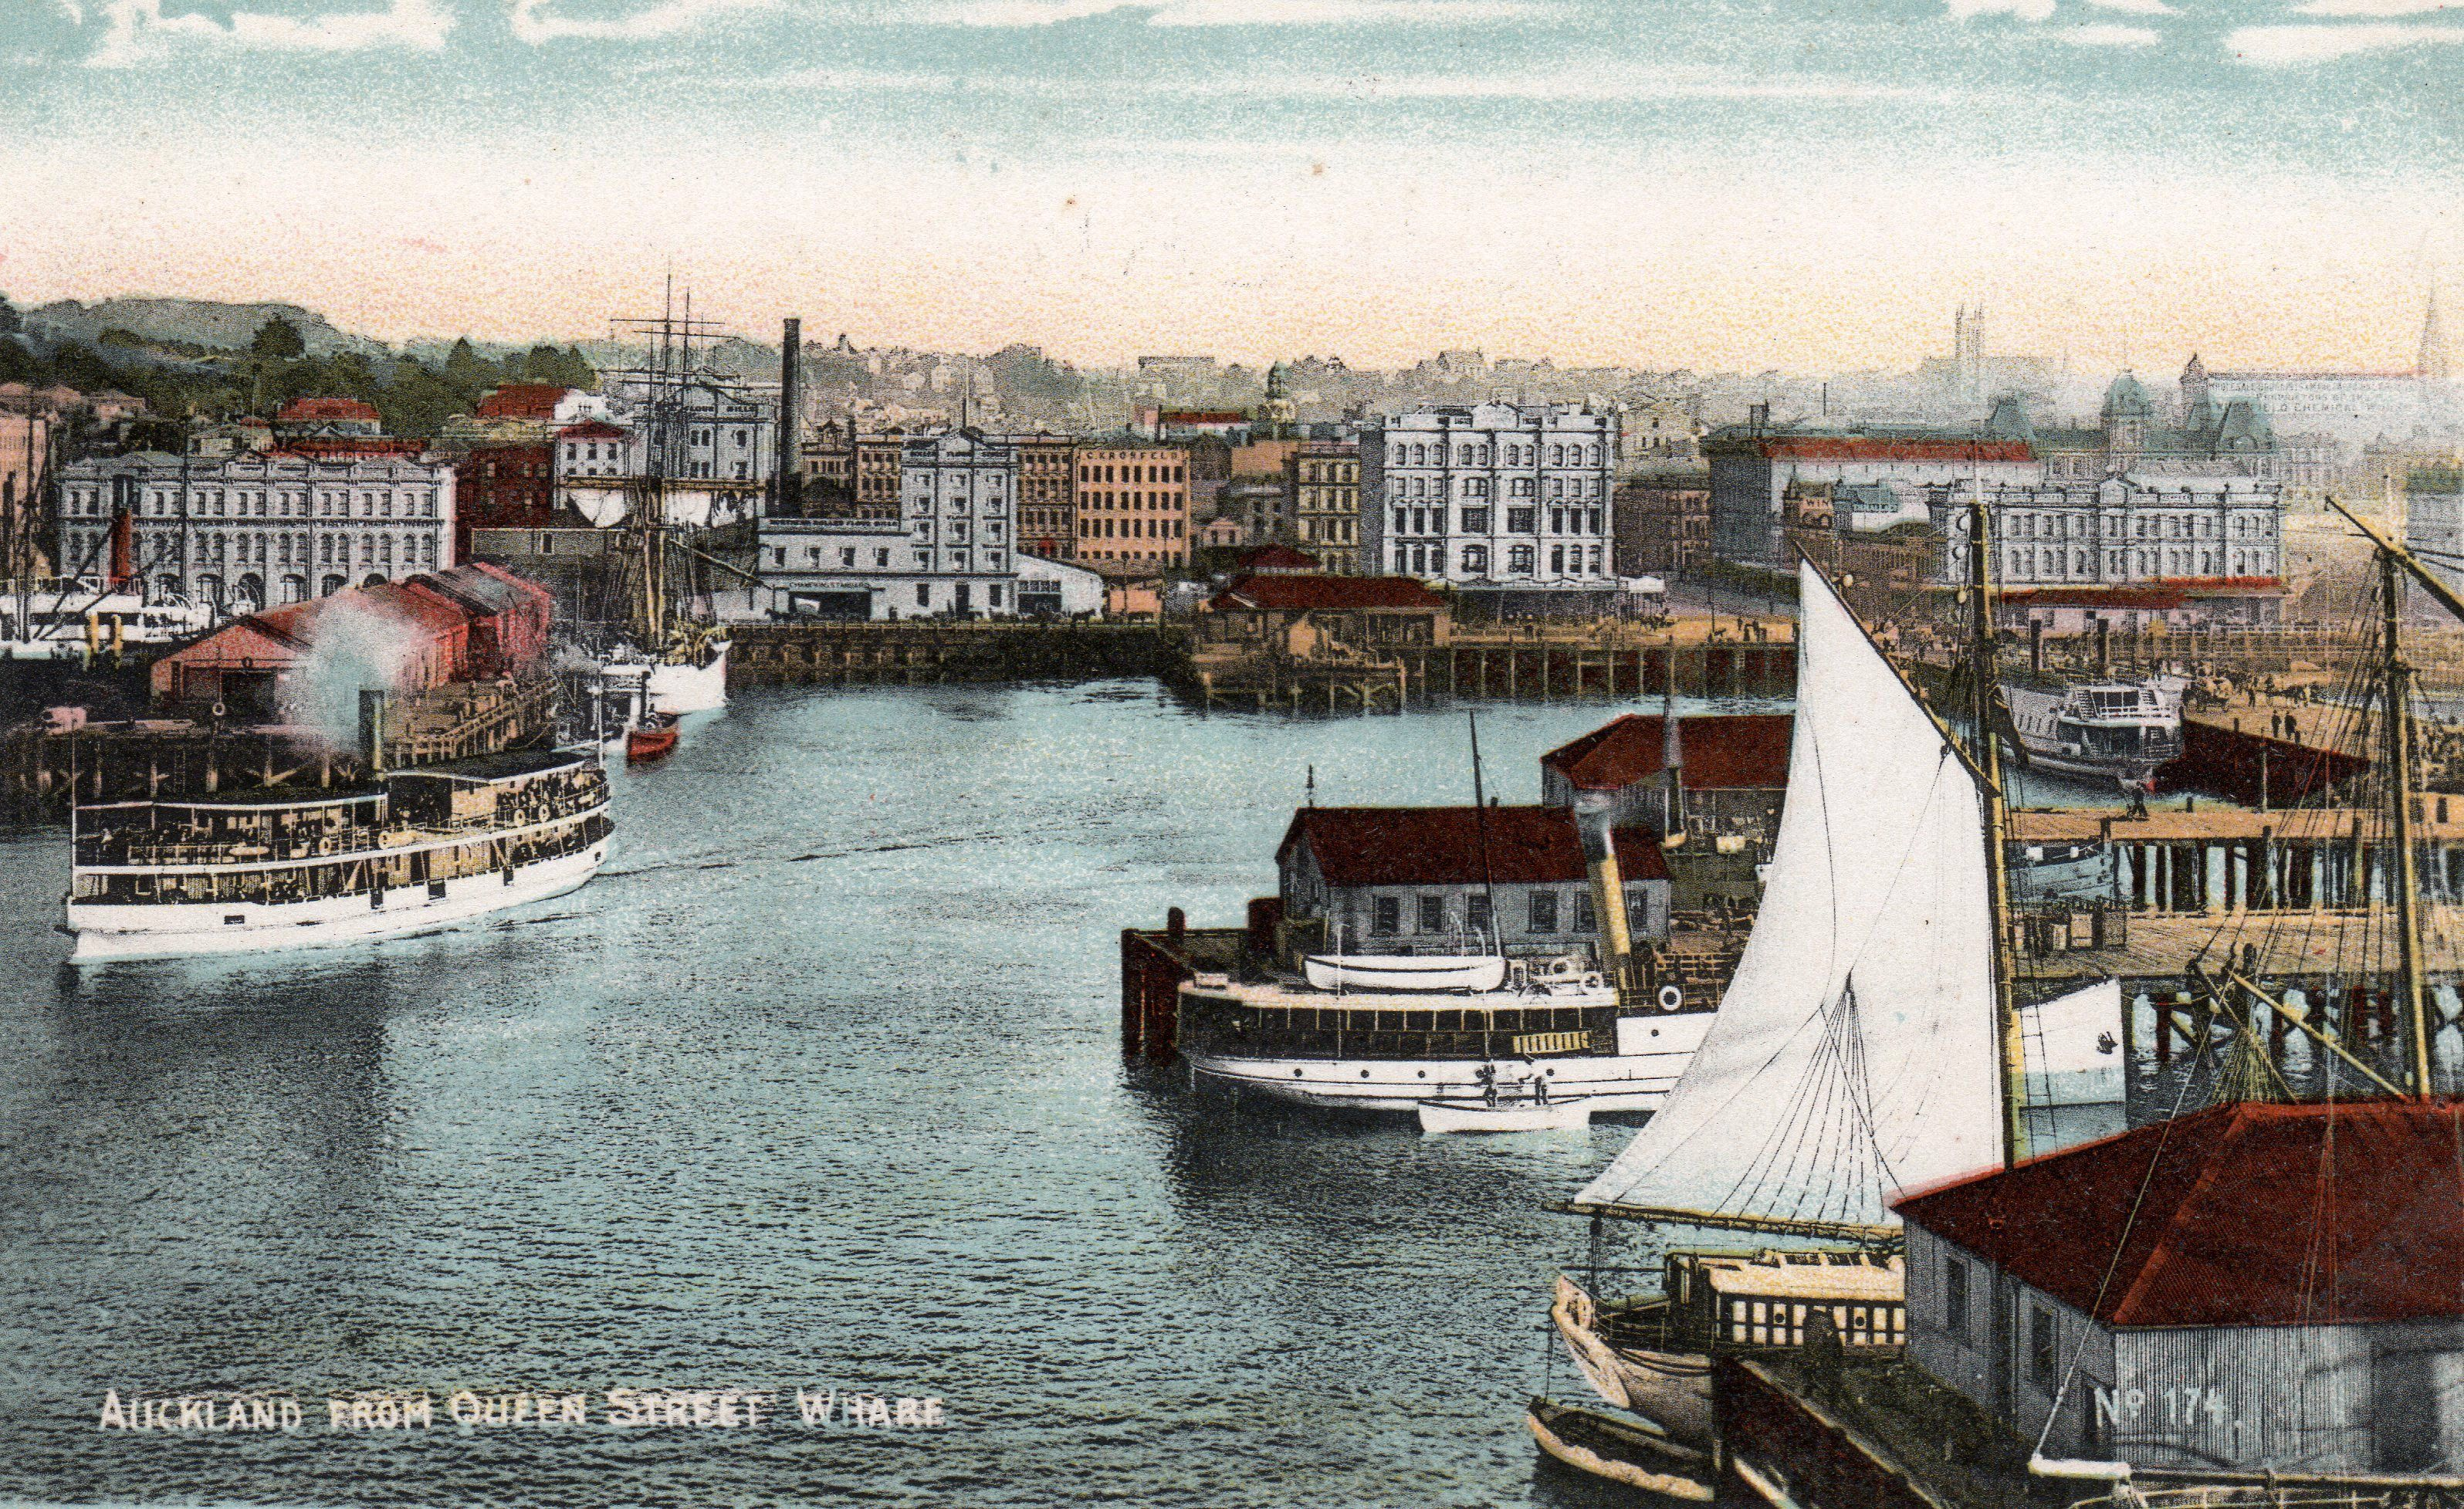 Auckland from Queen Street Wharf in about 1900. From a